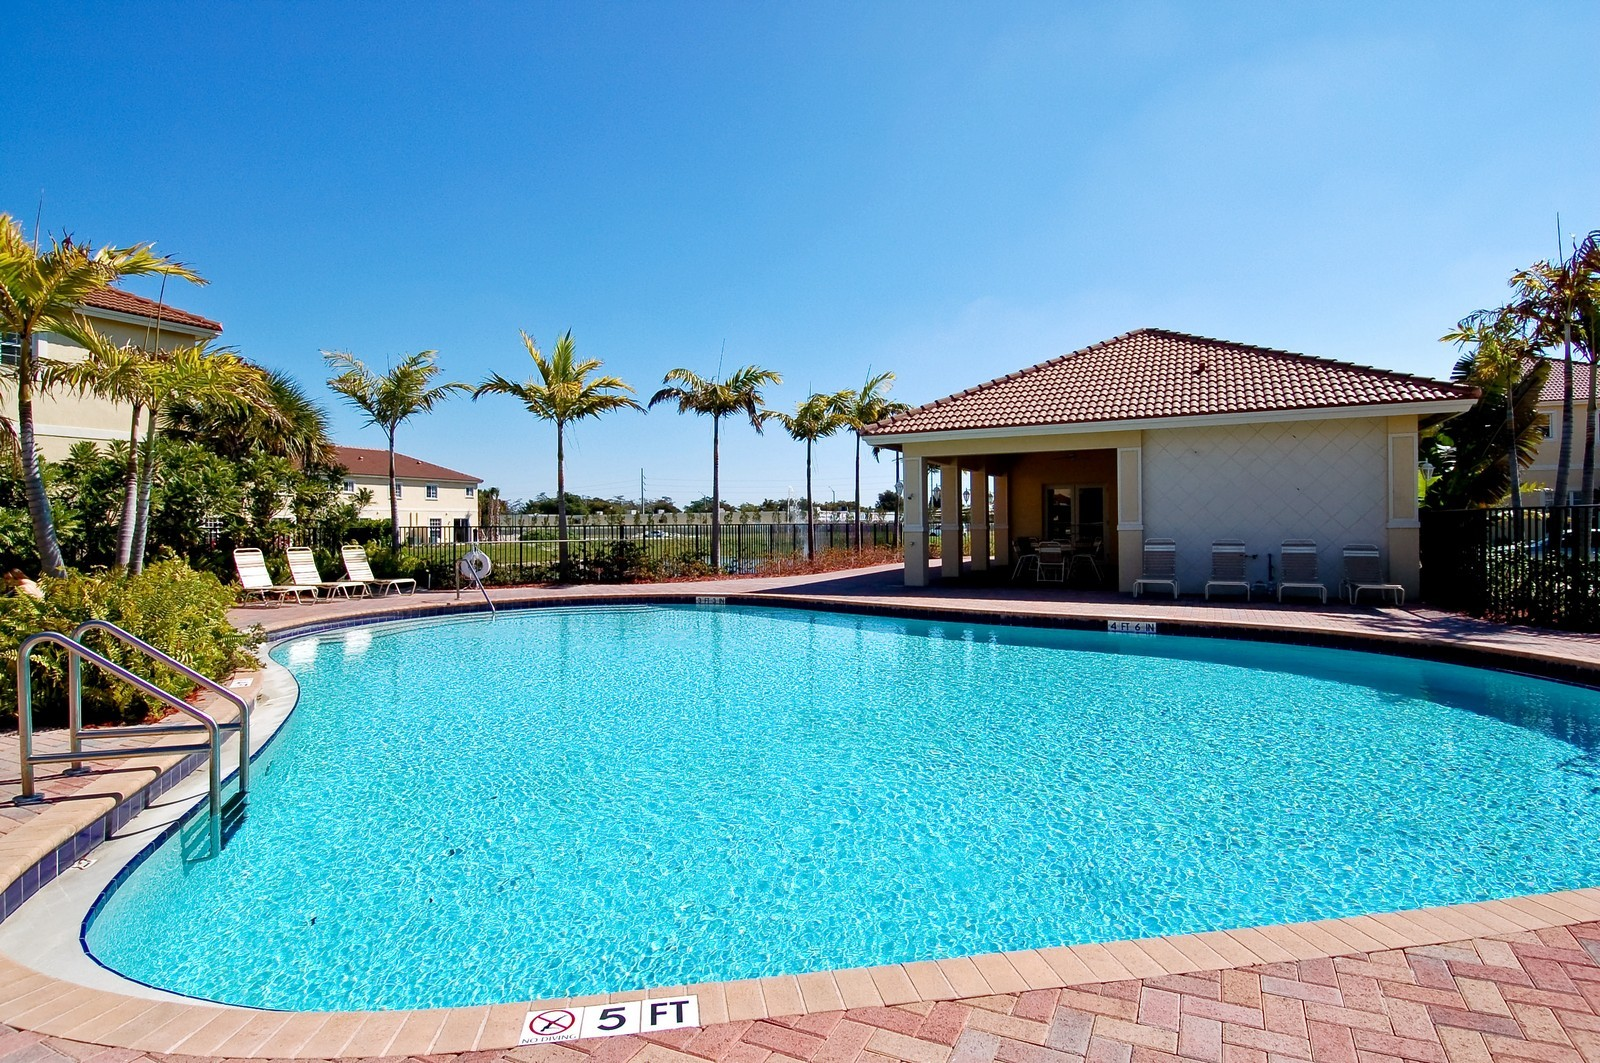 Real Estate Photography - 3169 NW 32nd St, Cayman Model, Oakland Park, FL, 33309 - Pool